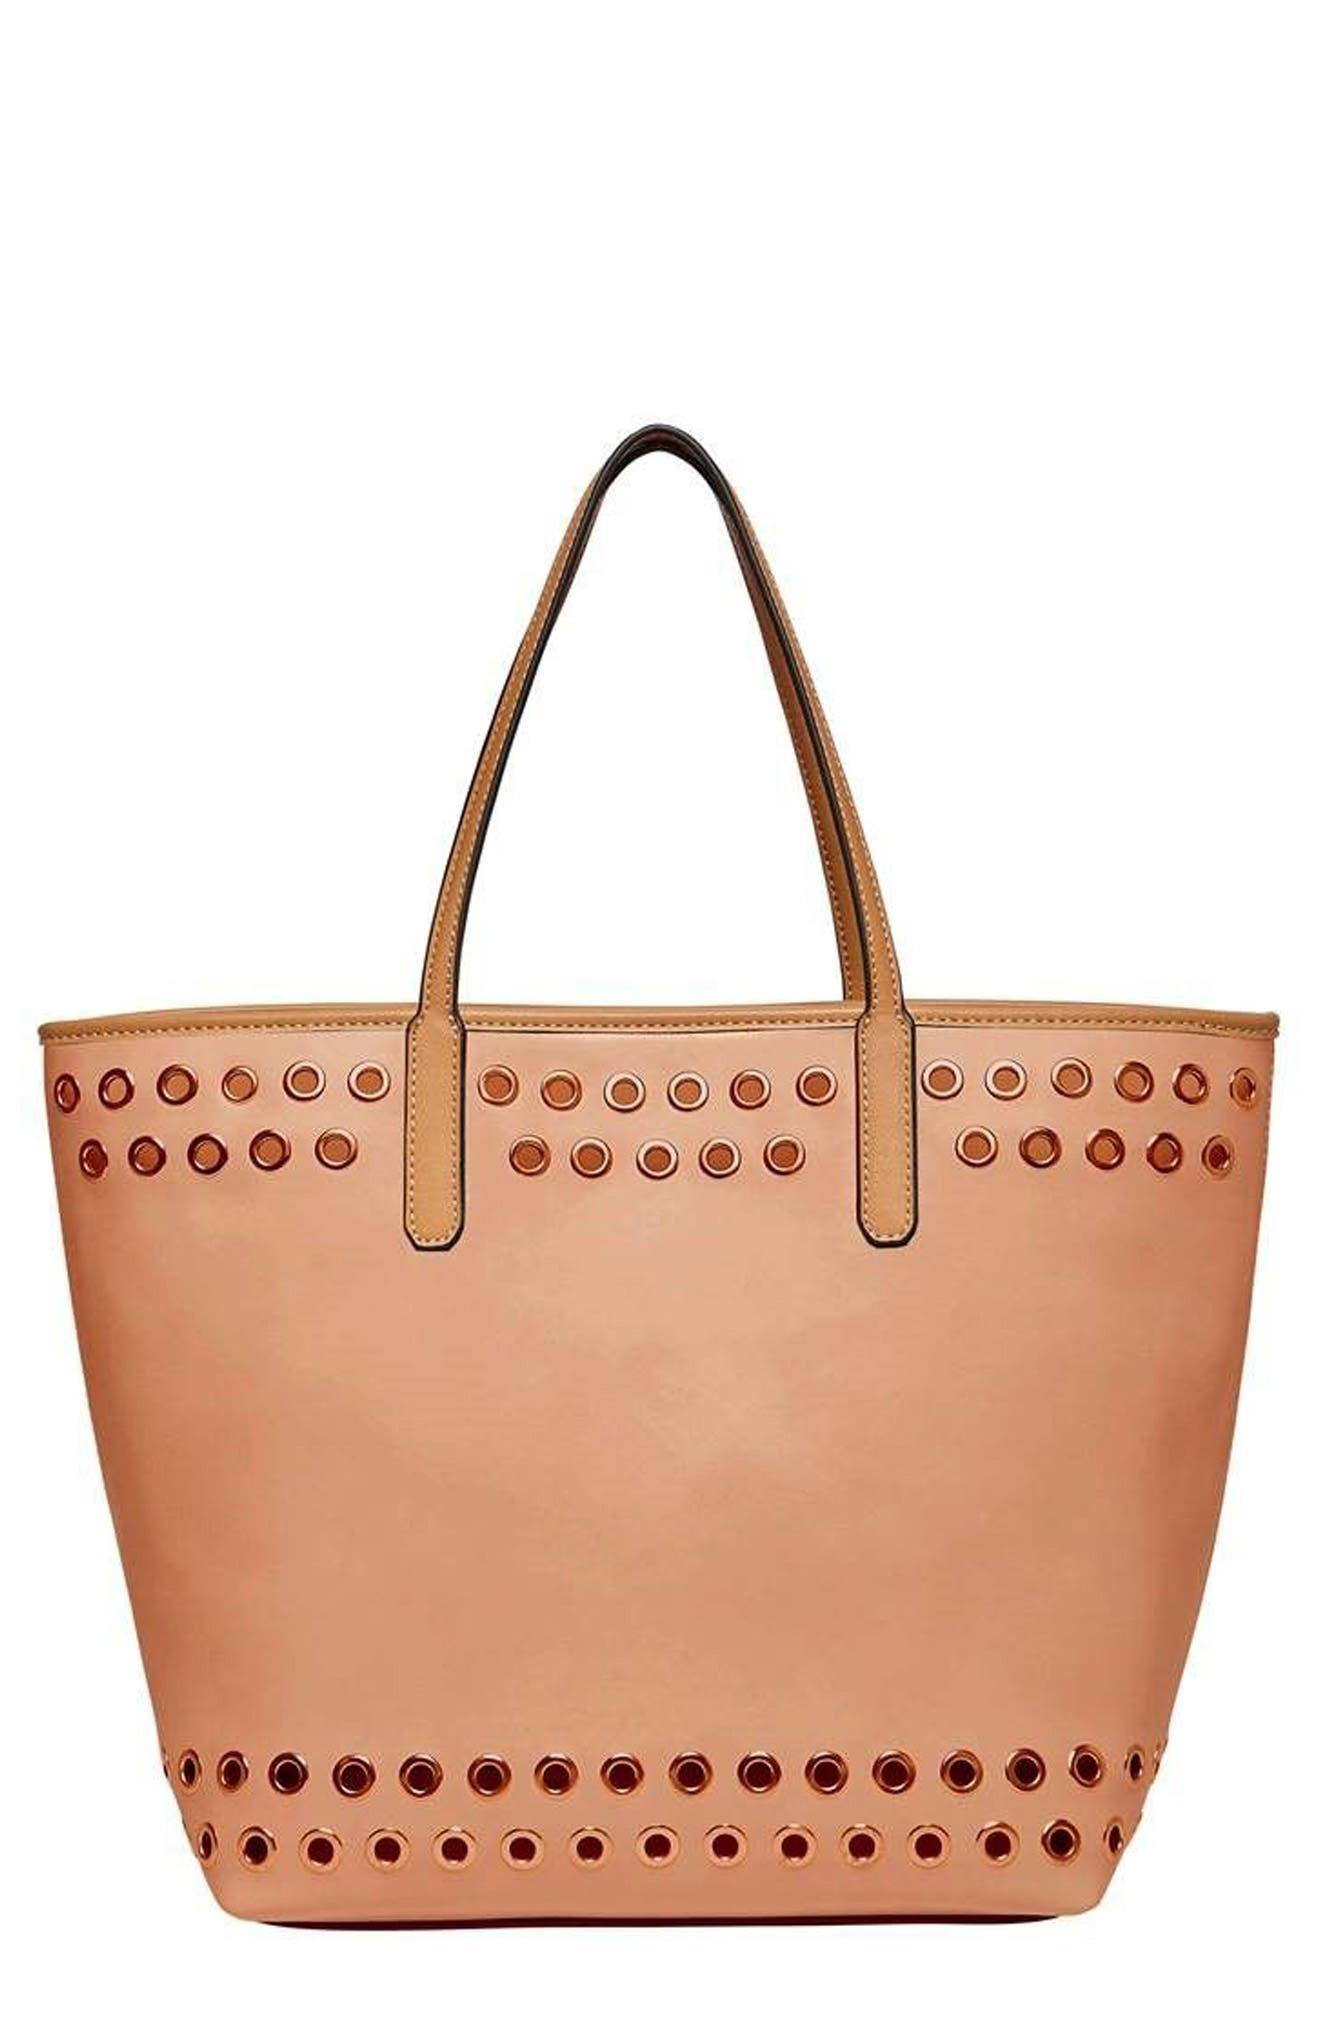 Main Image - Urban Originals Wonderland Vegan Leather Tote & Shoulder Bag